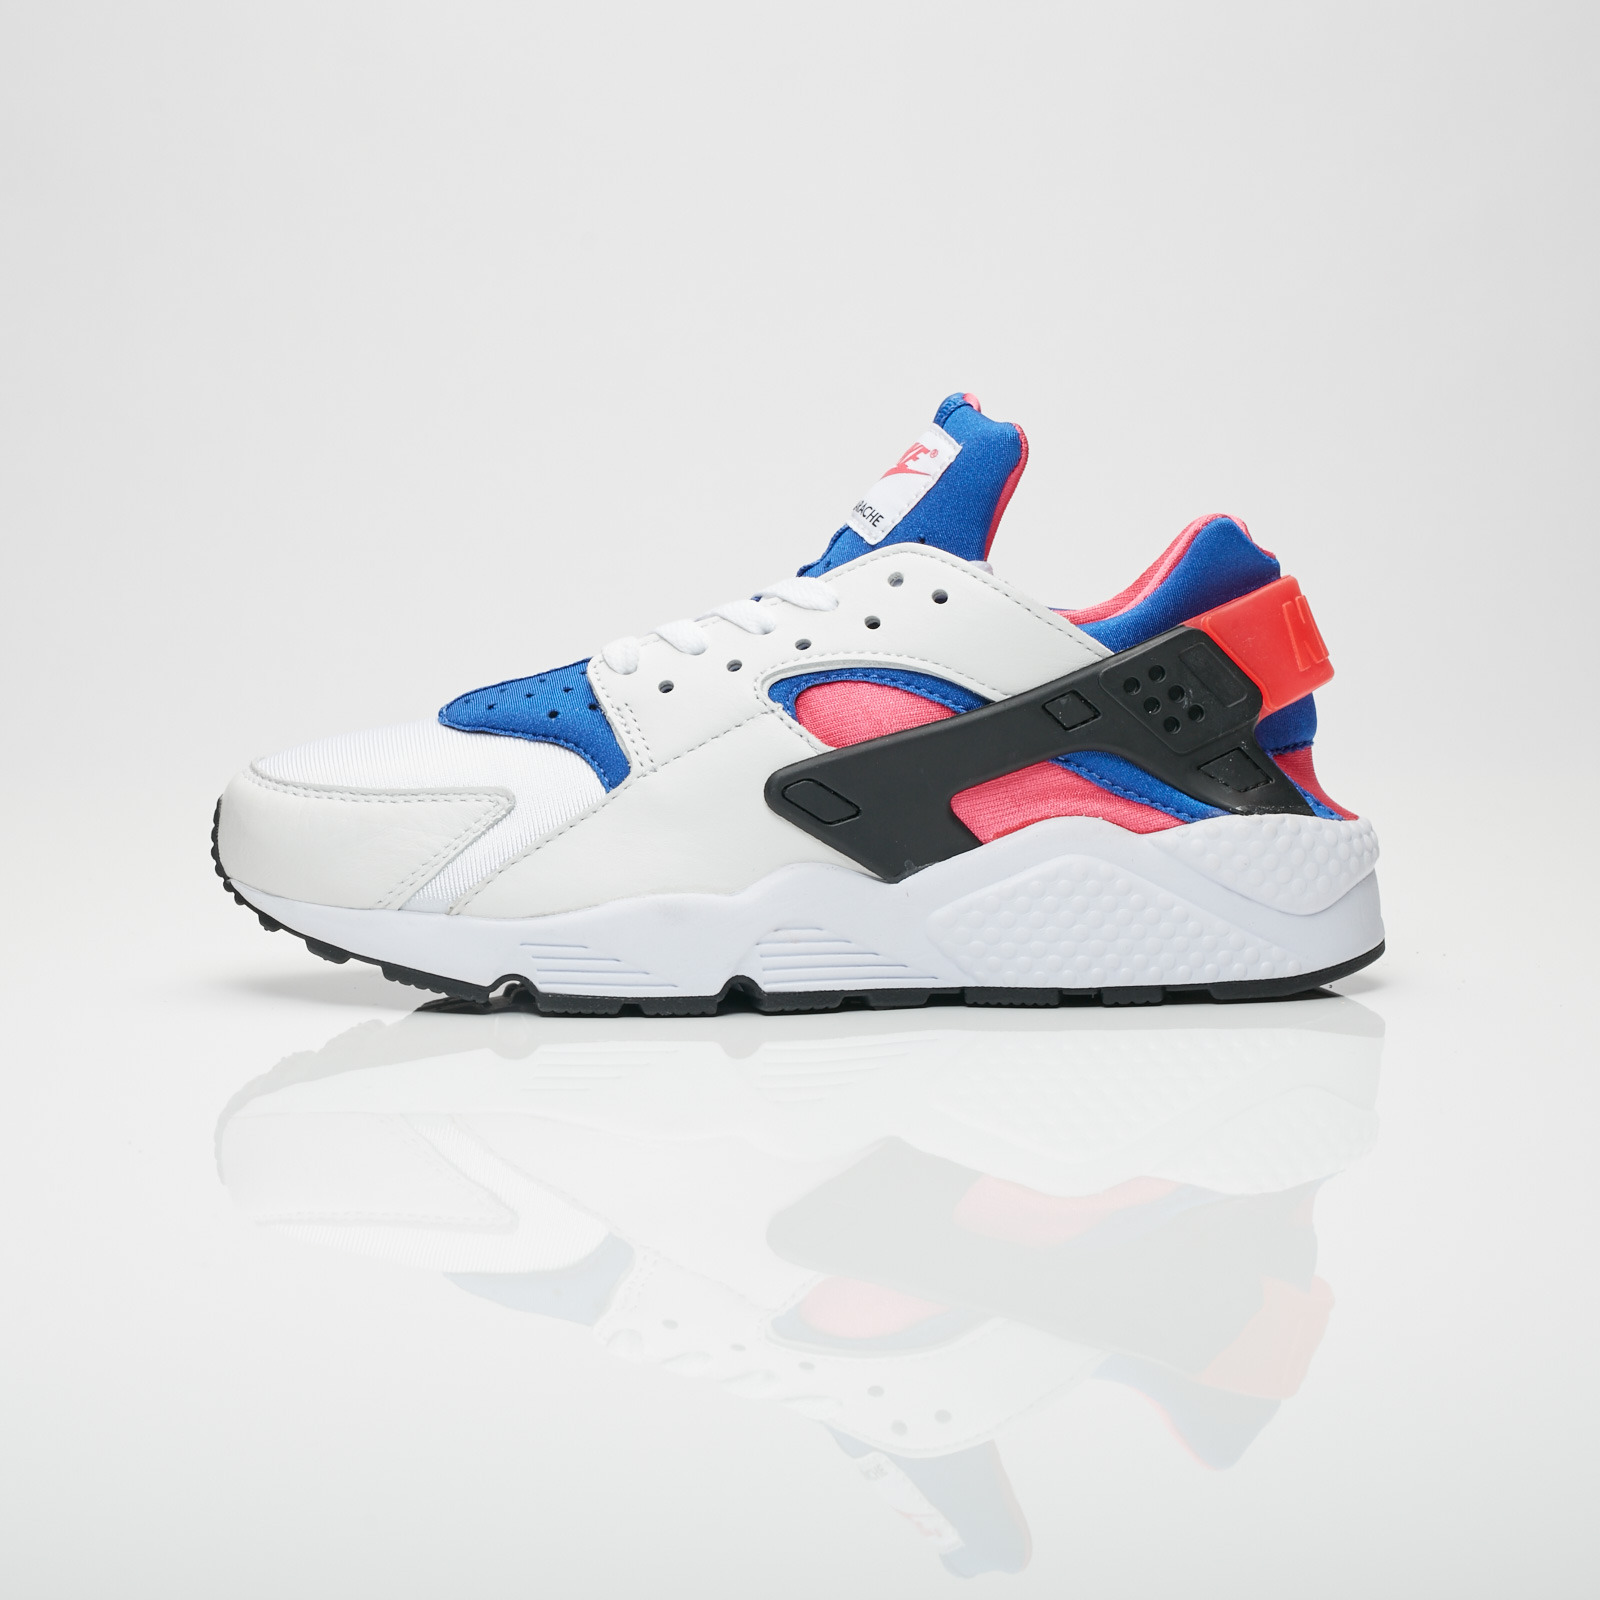 65e9ecbb20408 Nike Air Huarache Run 91 QS - Ah8049-100 - Sneakersnstuff